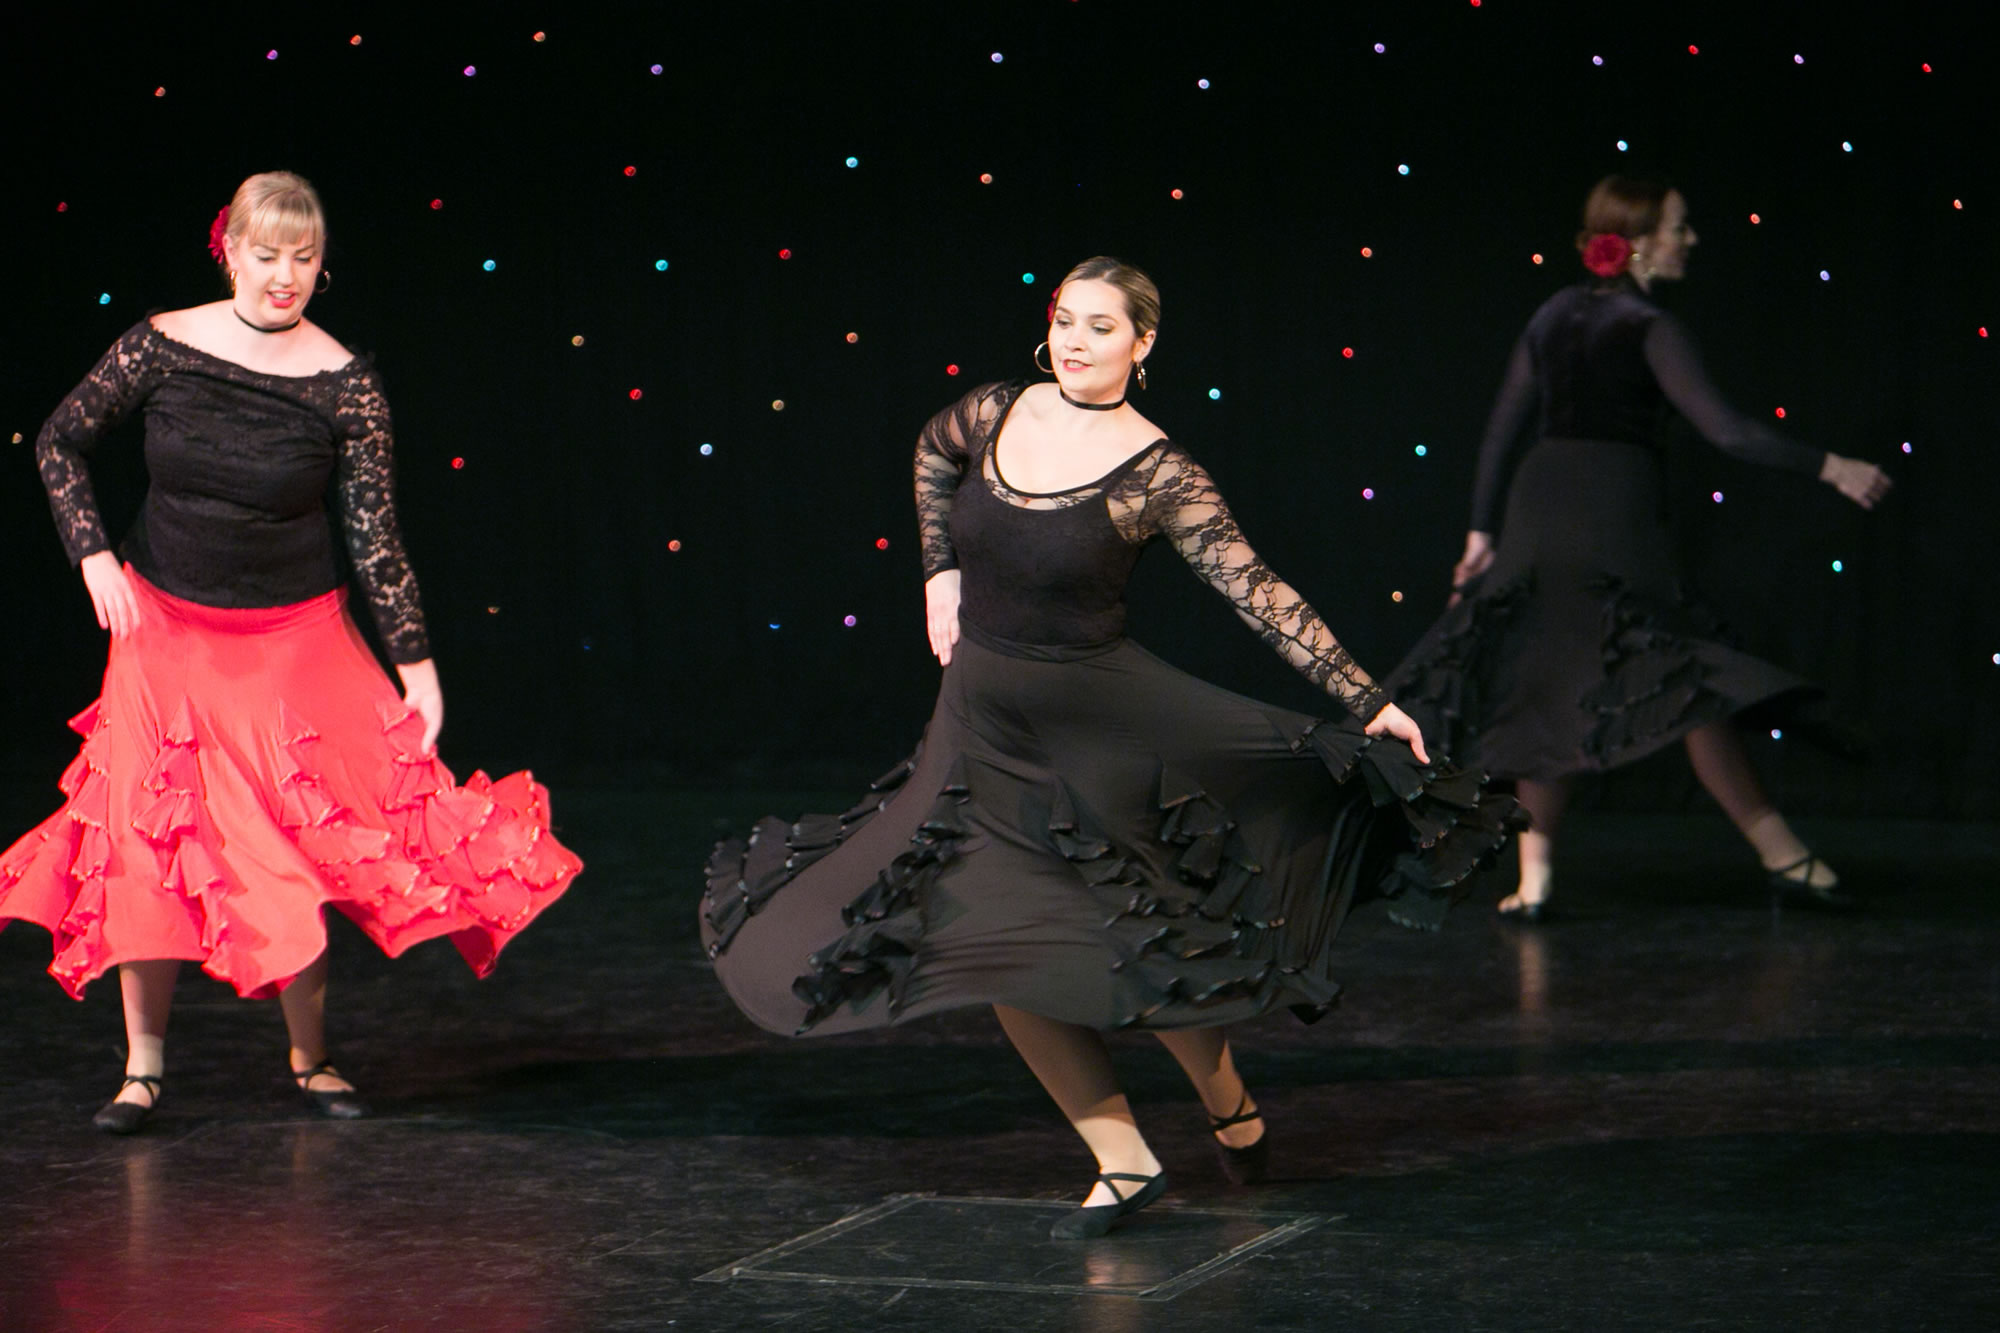 Hitchin_School_of_Dance_Show_2019-SM1_1997.jpg